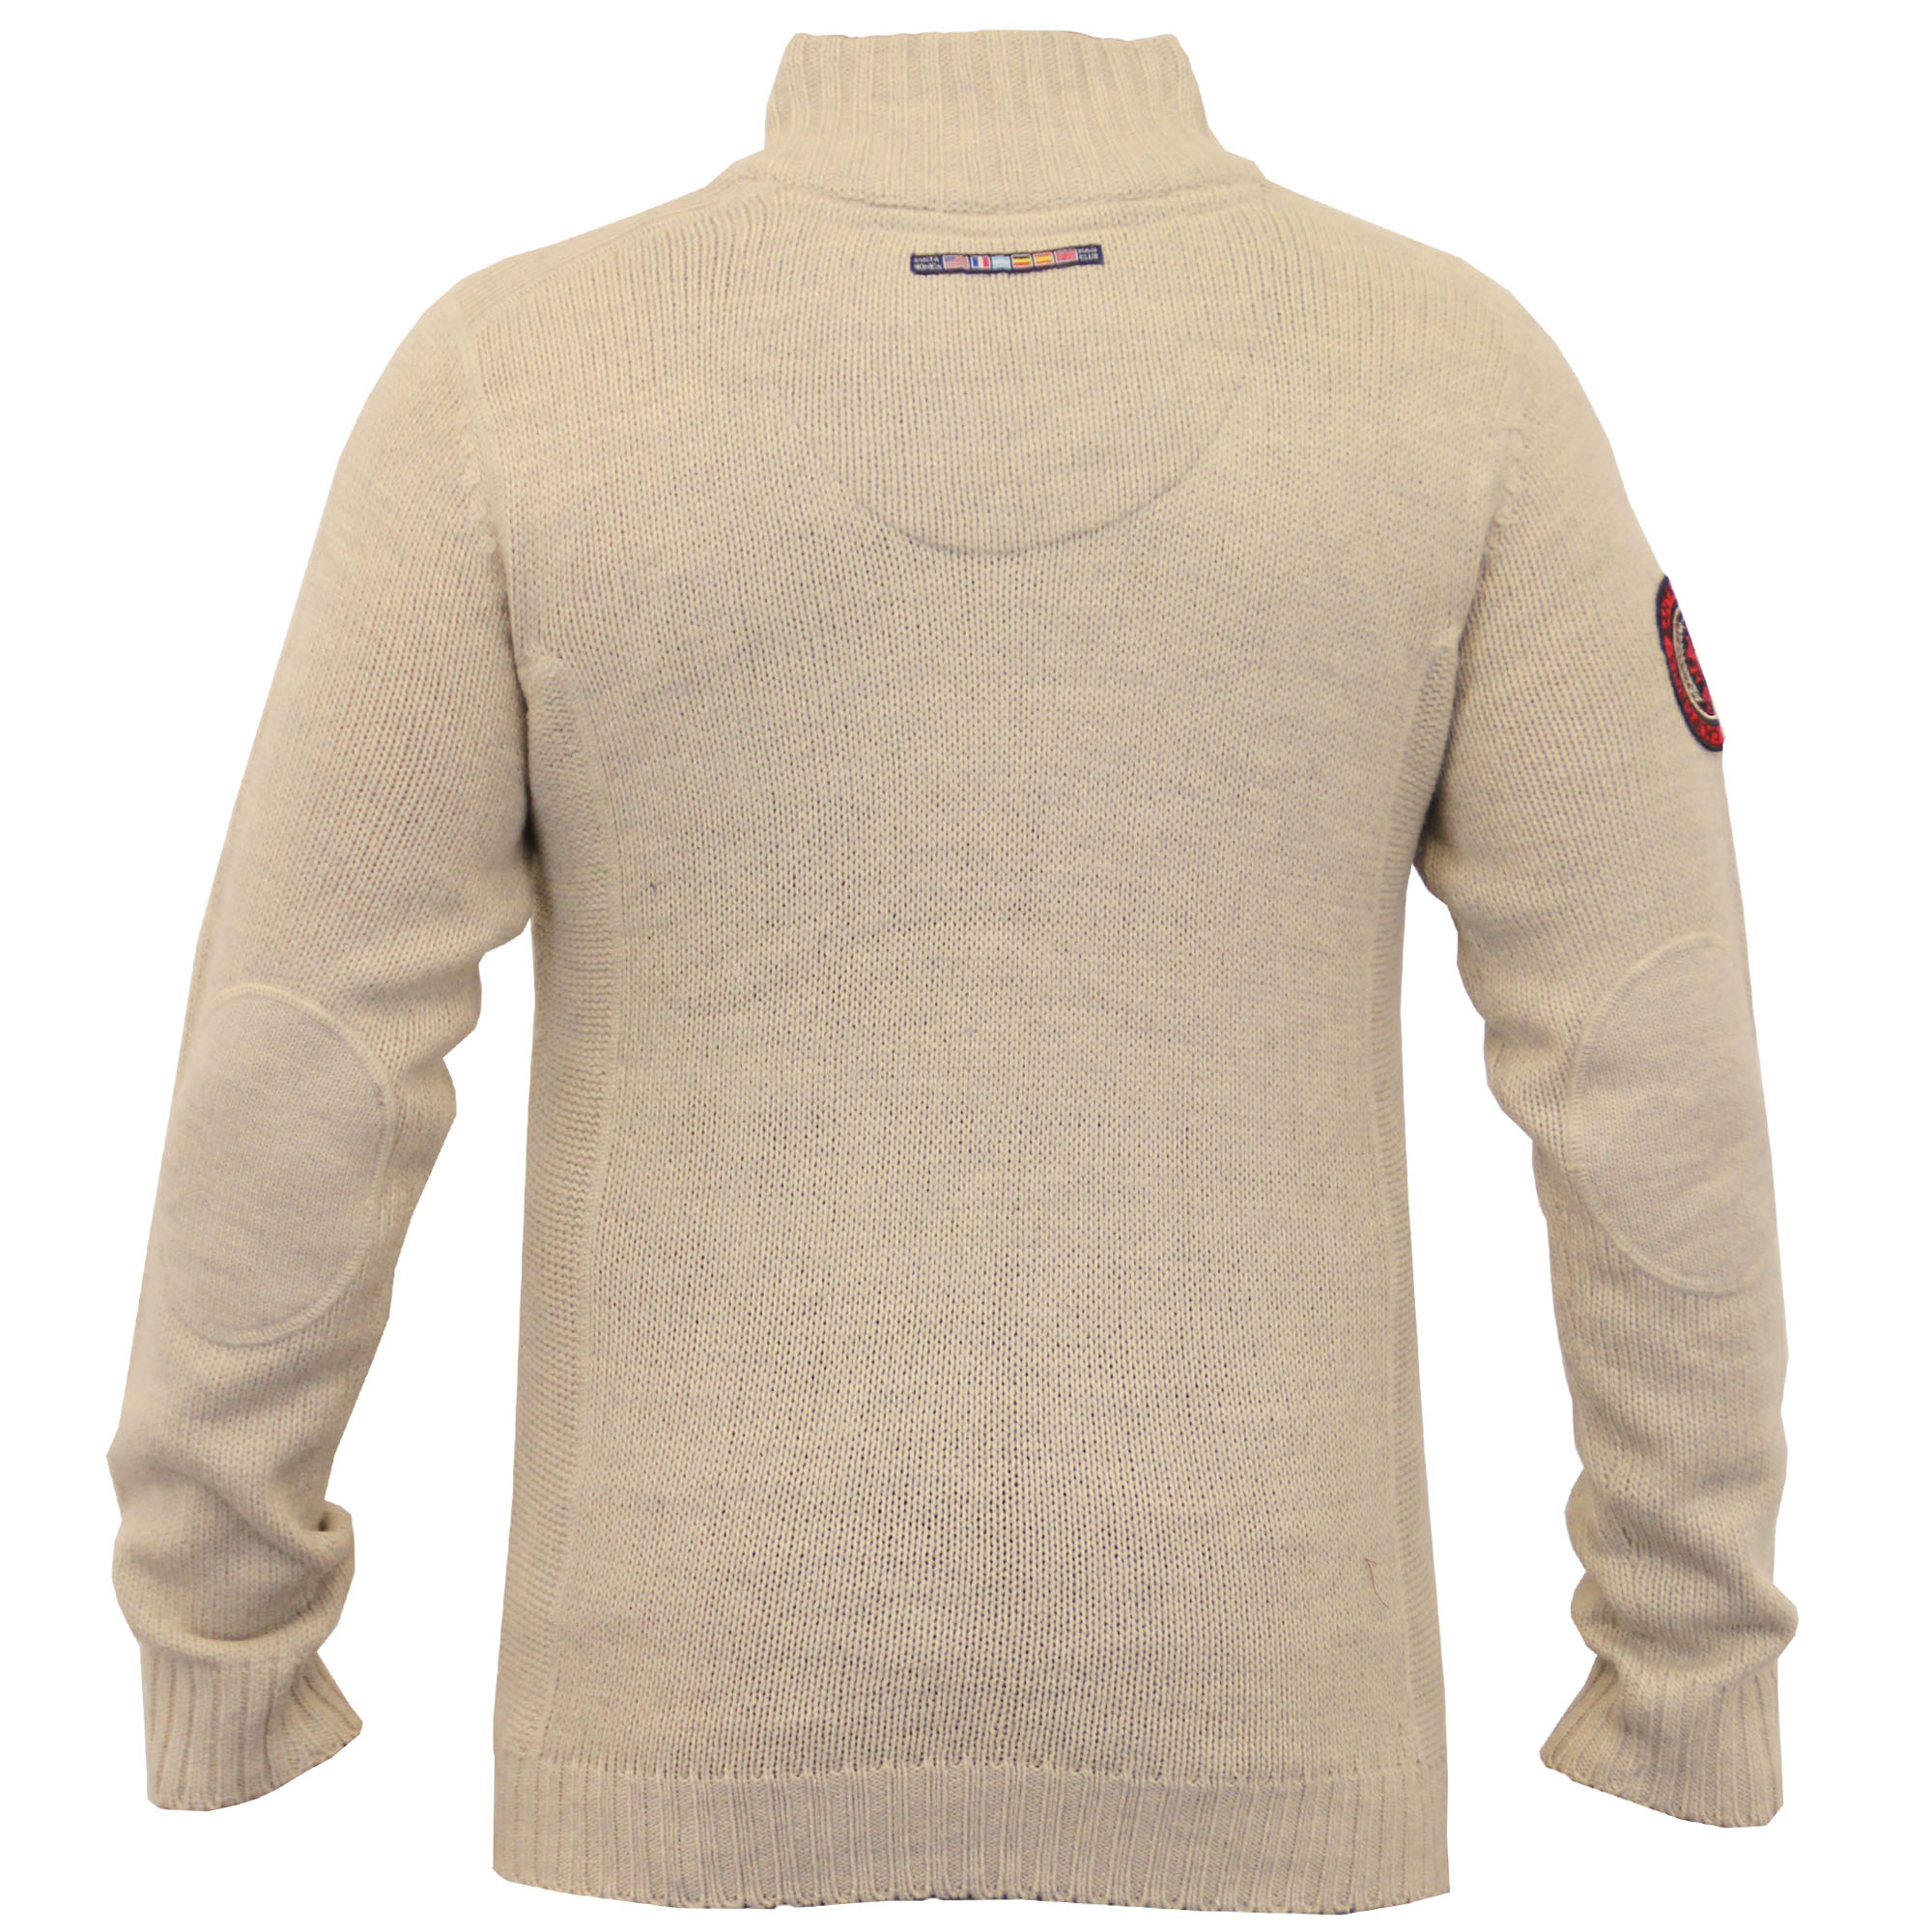 Mens-Wool-Mix-Jumpers-Santa-Monica-Cable-Knitted-Jacquard-Sweater-Pullover-New thumbnail 11